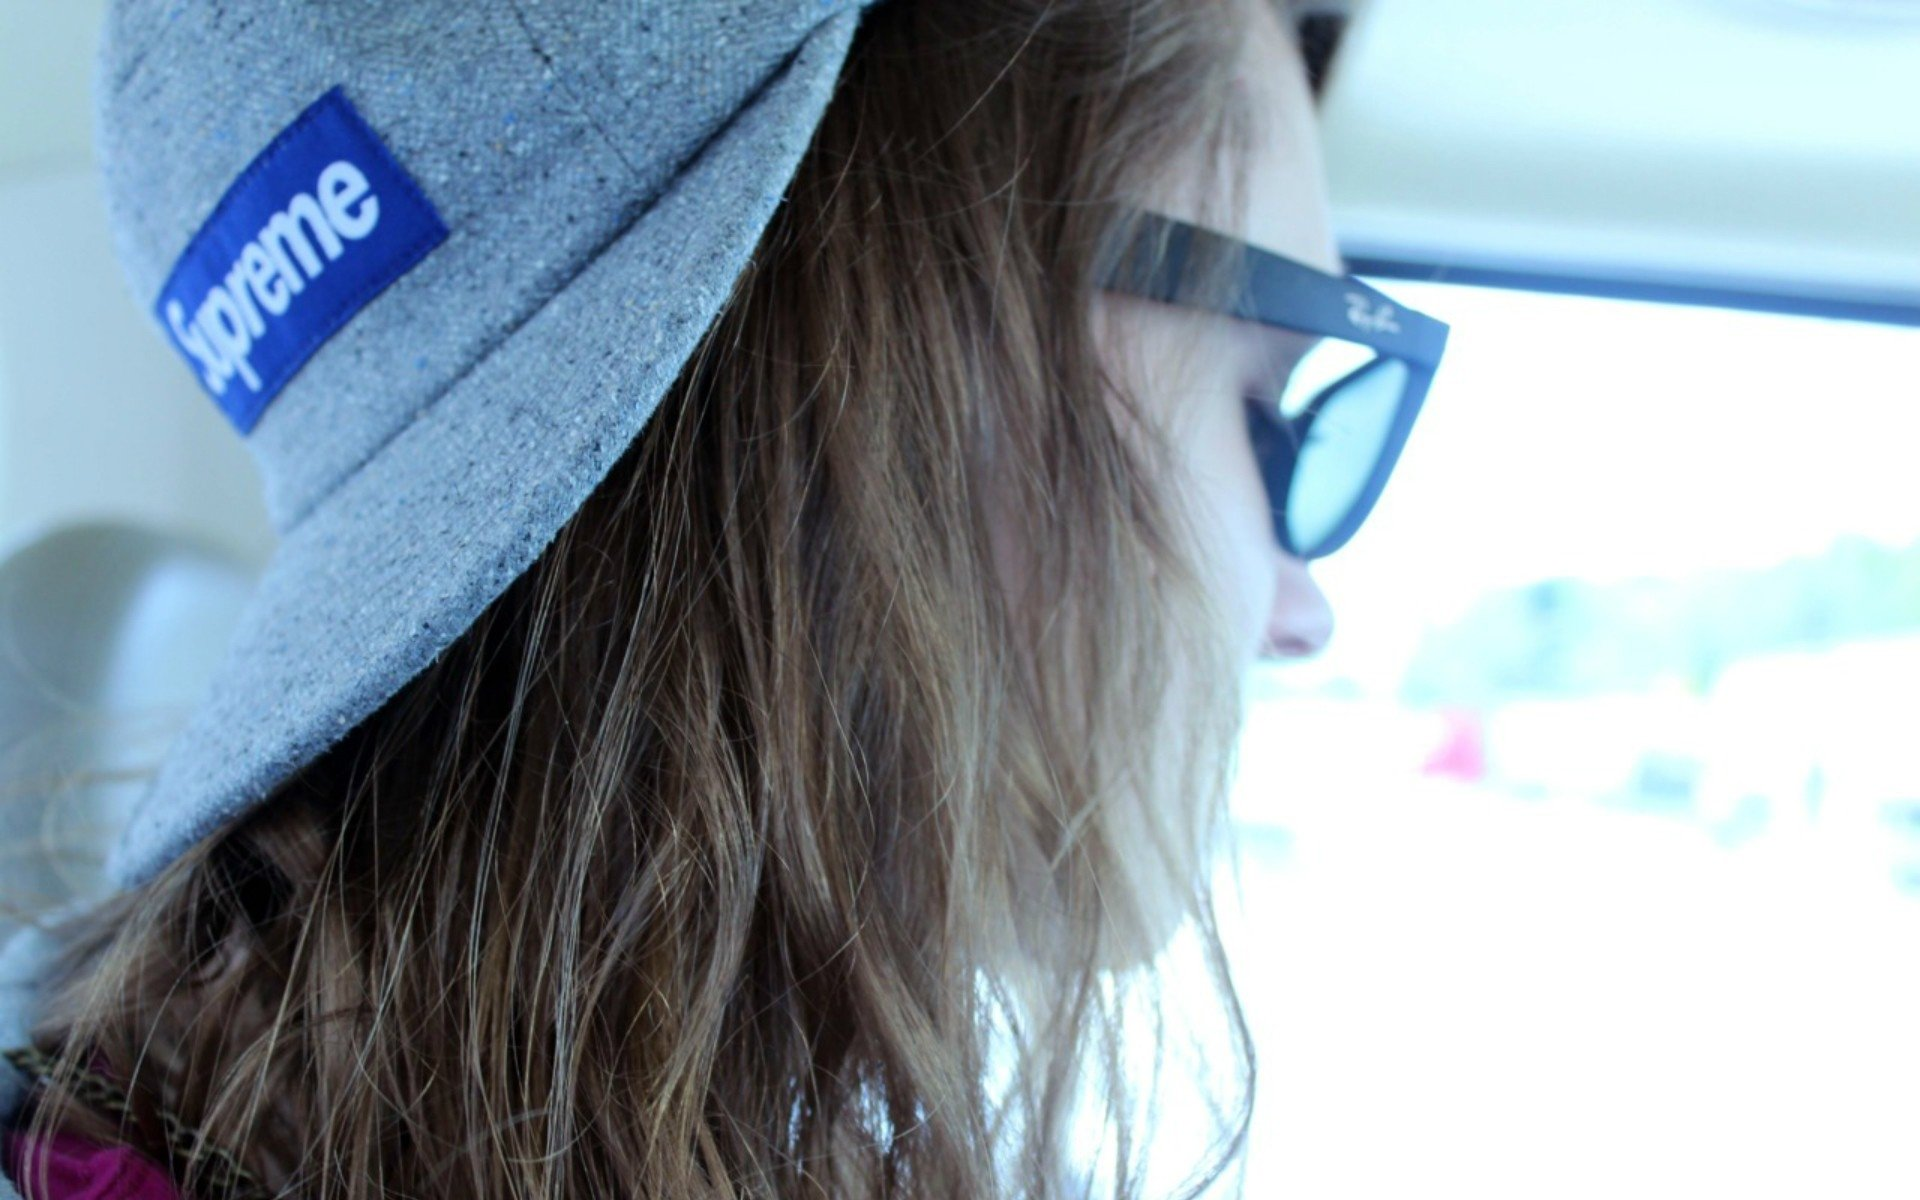 The girl wearing a cap supreme wallpapers and images   wallpapers 1920x1200